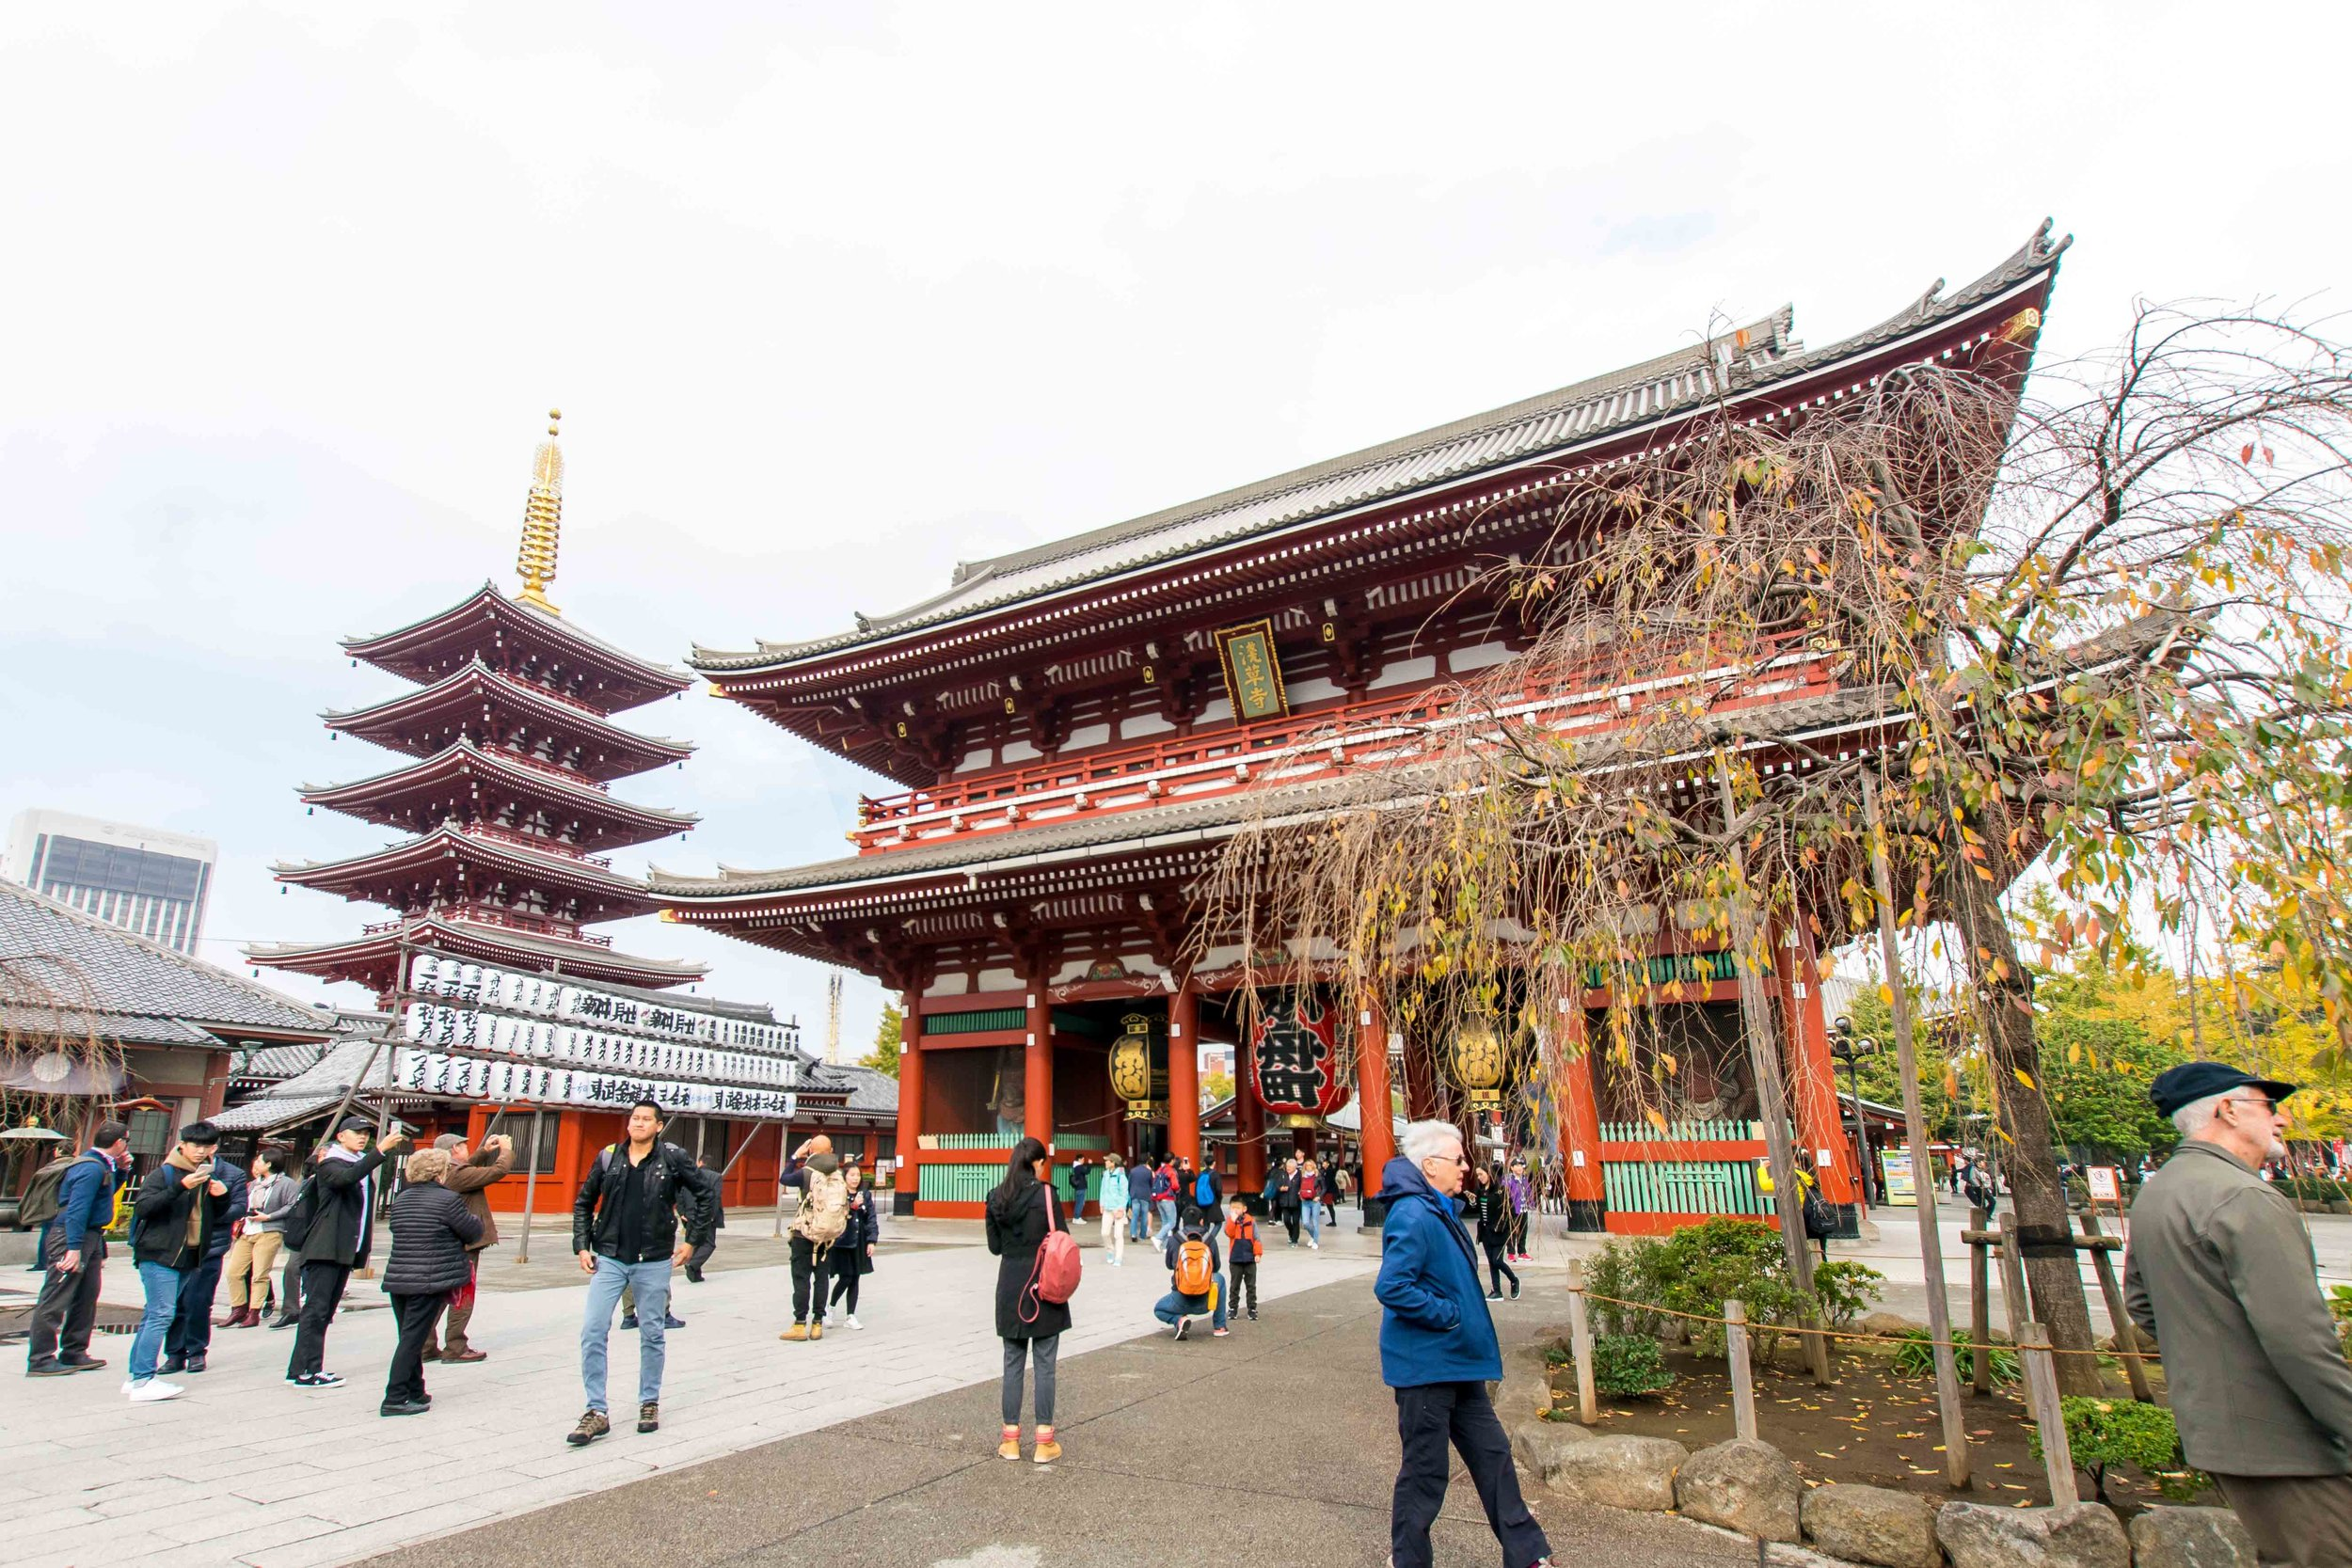 One of the best things to do in Tokyo is visit Senso-ji